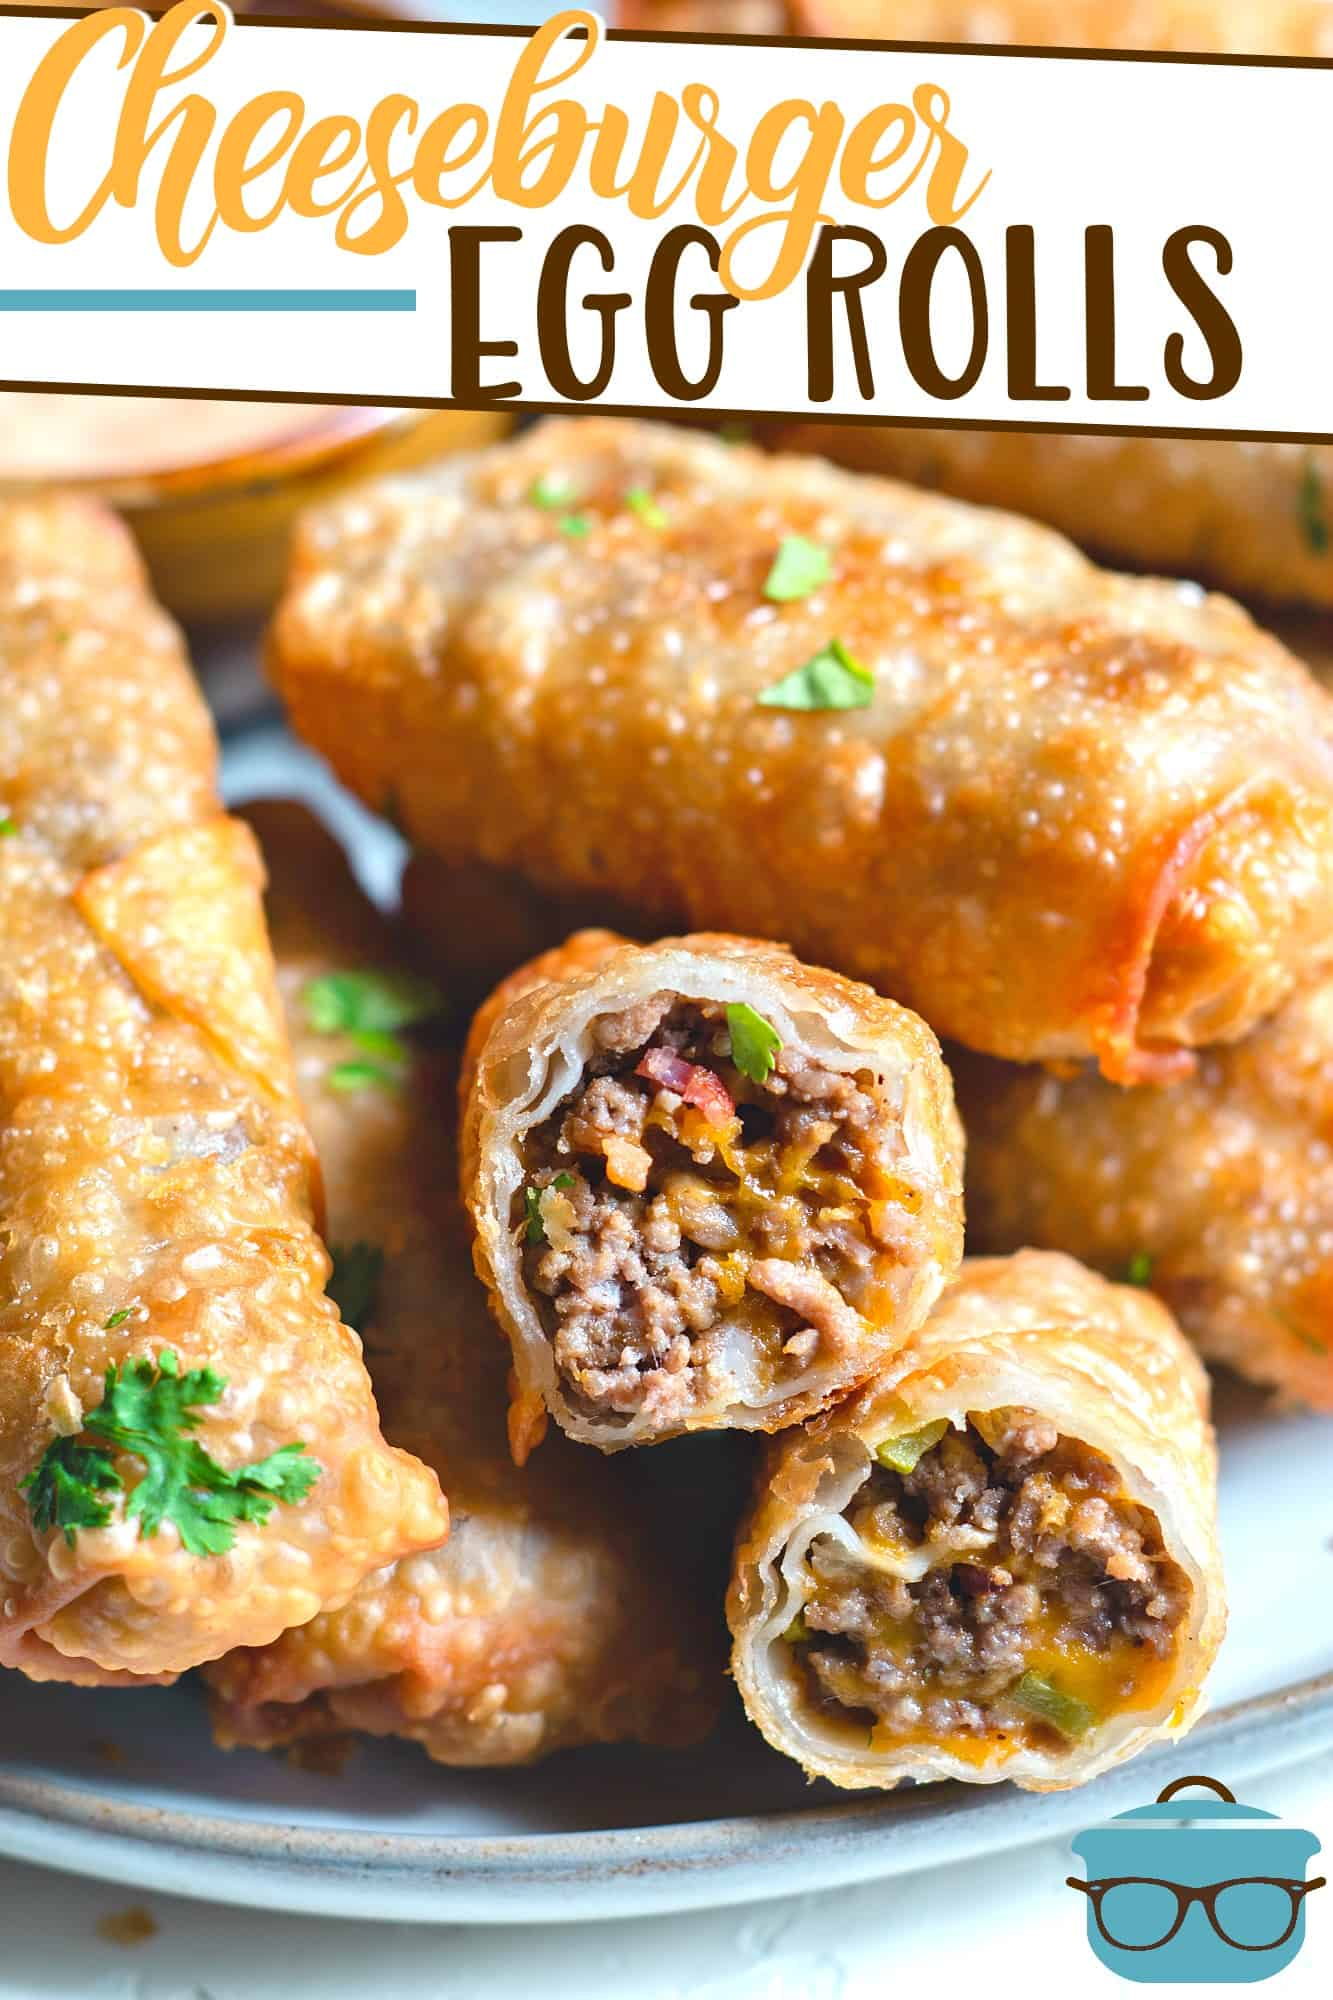 Cheeseburger Egg Rolls have a flavorful ground beef filling fried in an egg roll wrapper and served with a creamy burger dipping sauce.